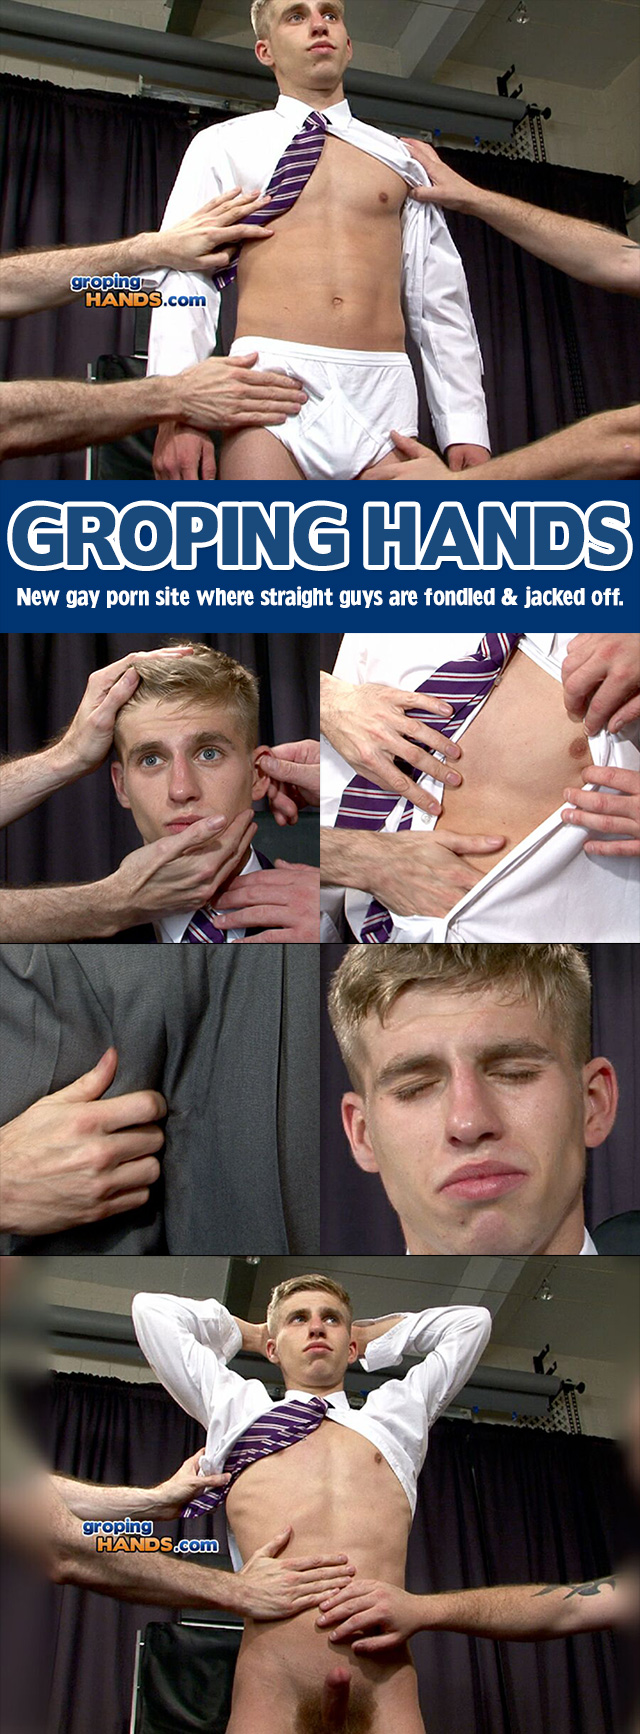 Straight Gay Porn off porn gay guy collages blond hands gropinghands groped jacked groping